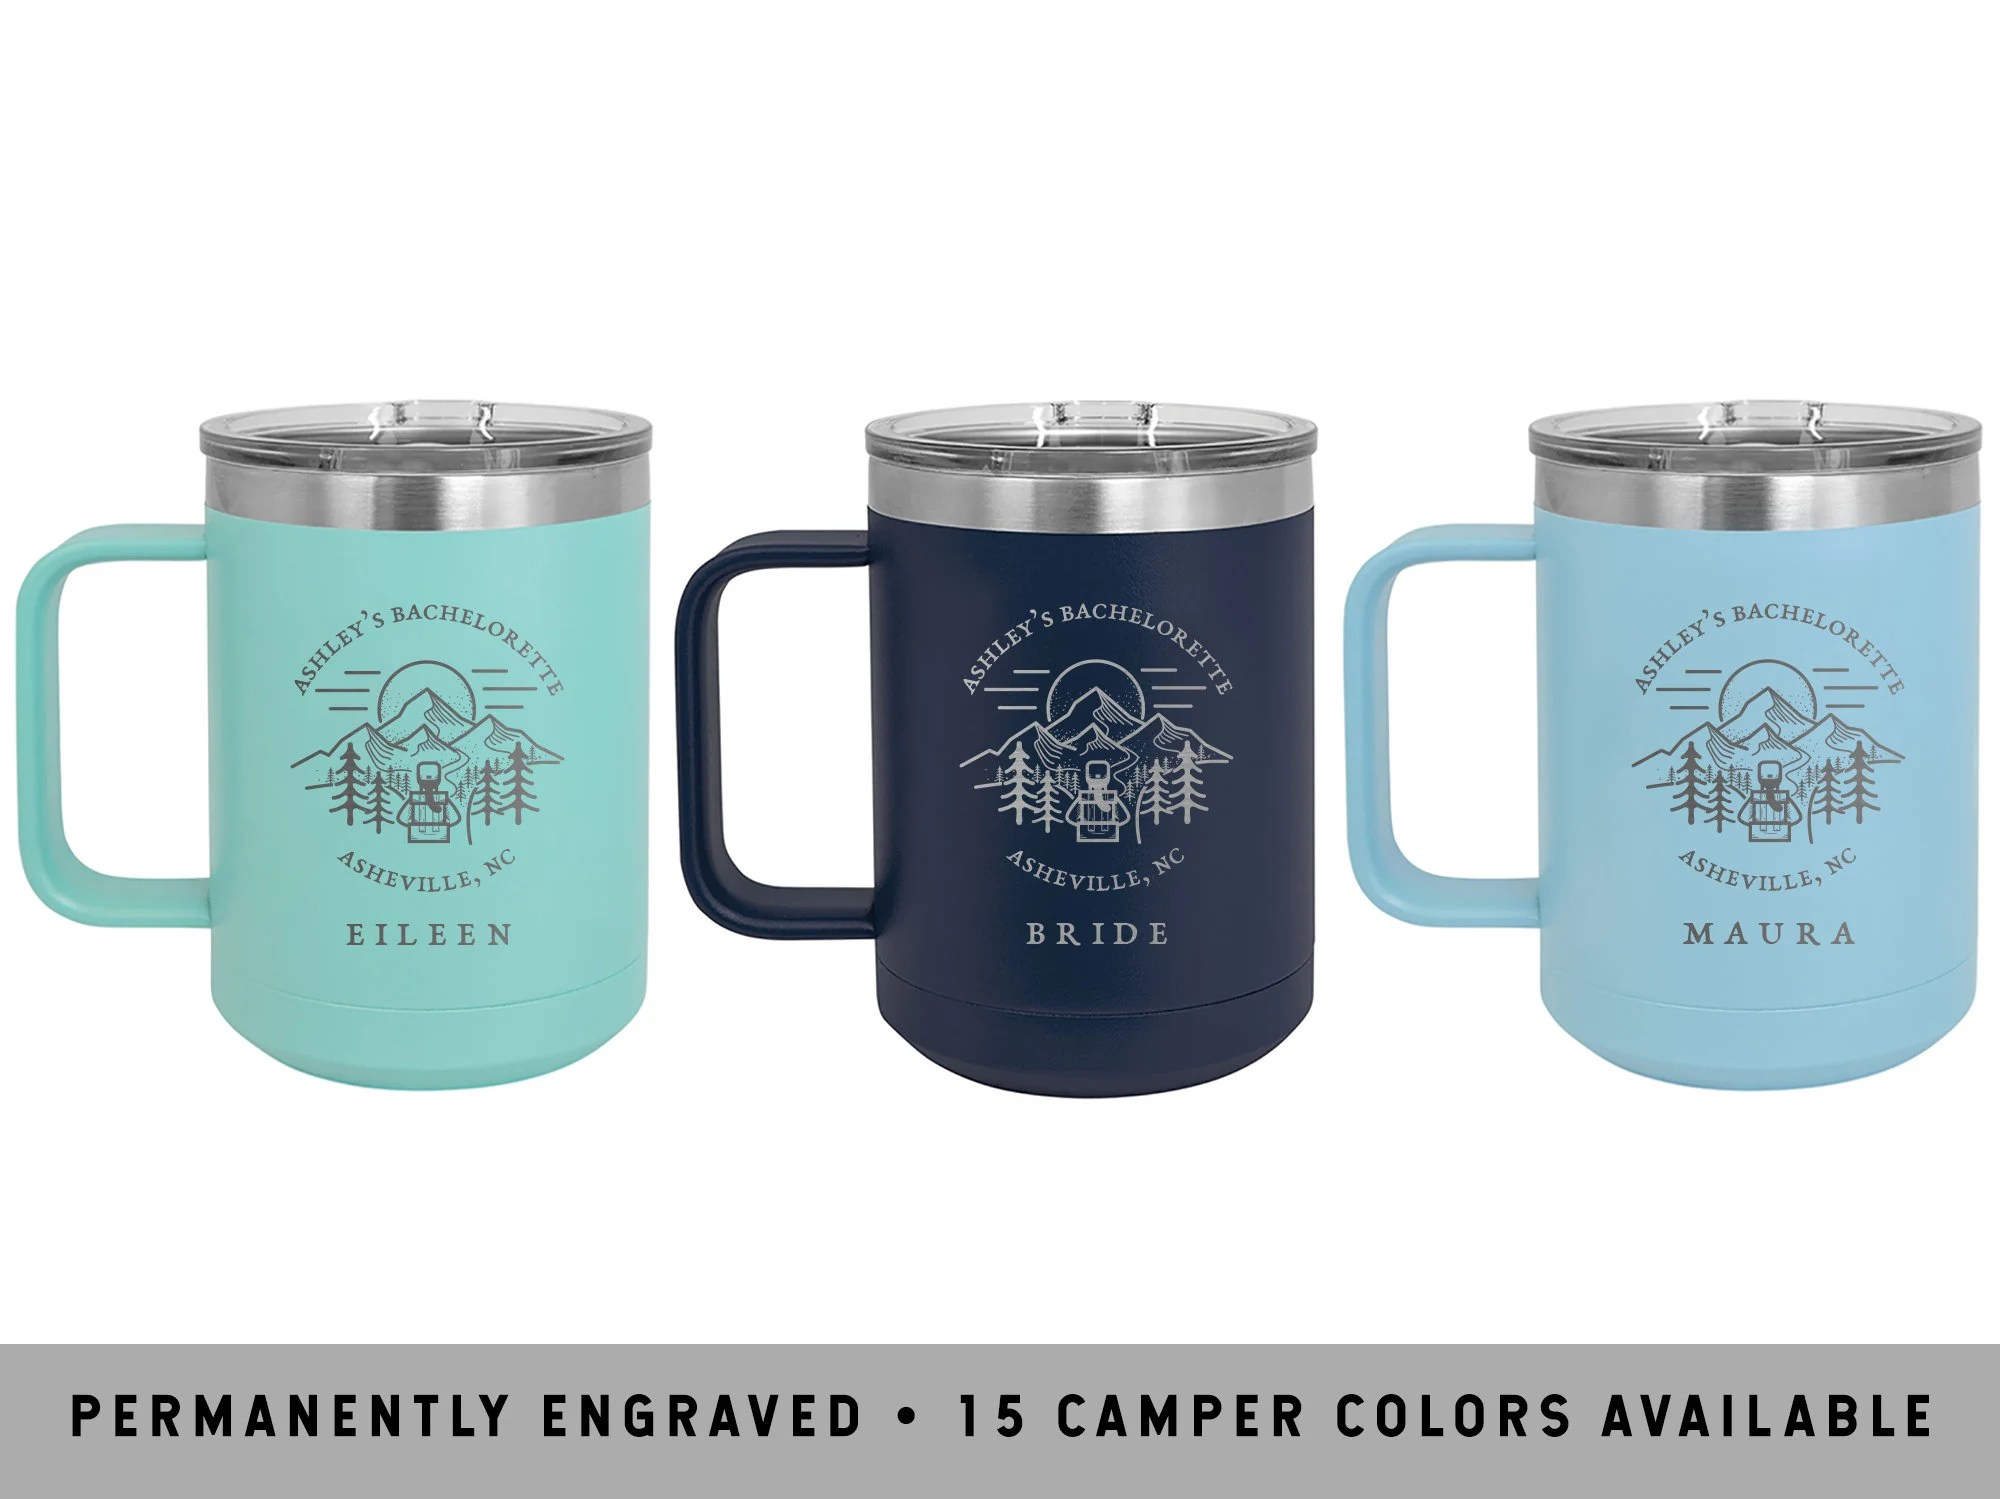 5A555d55                                                                                                                   More colours                                                                                        MOUNTAIN TRAILBLAZER MUGS | Glamping Bachelorette Party | Bridal Party Gifts | Bridesmaid Proposals | Hiking Camp Mugs | Rustic Bachelorette                                                                    HandToHeartBridal                               5 out of 5 stars                                                                                                                                                                                                                                                          (277)                                                      CA$34.45                                                              Bestseller